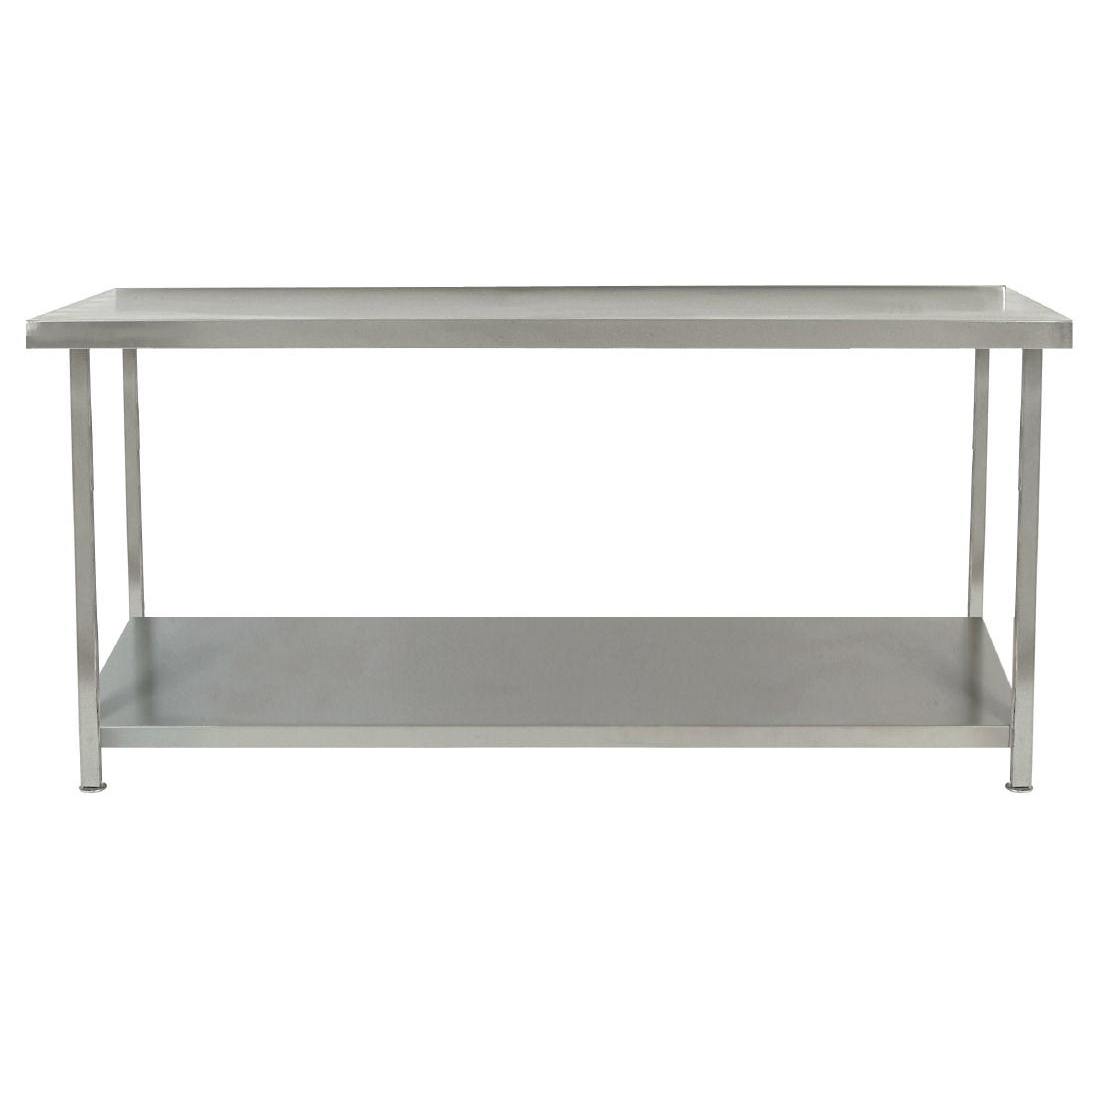 Parry Fully Welded Stainless Steel Centre Table with Undershelf 1500x700mm